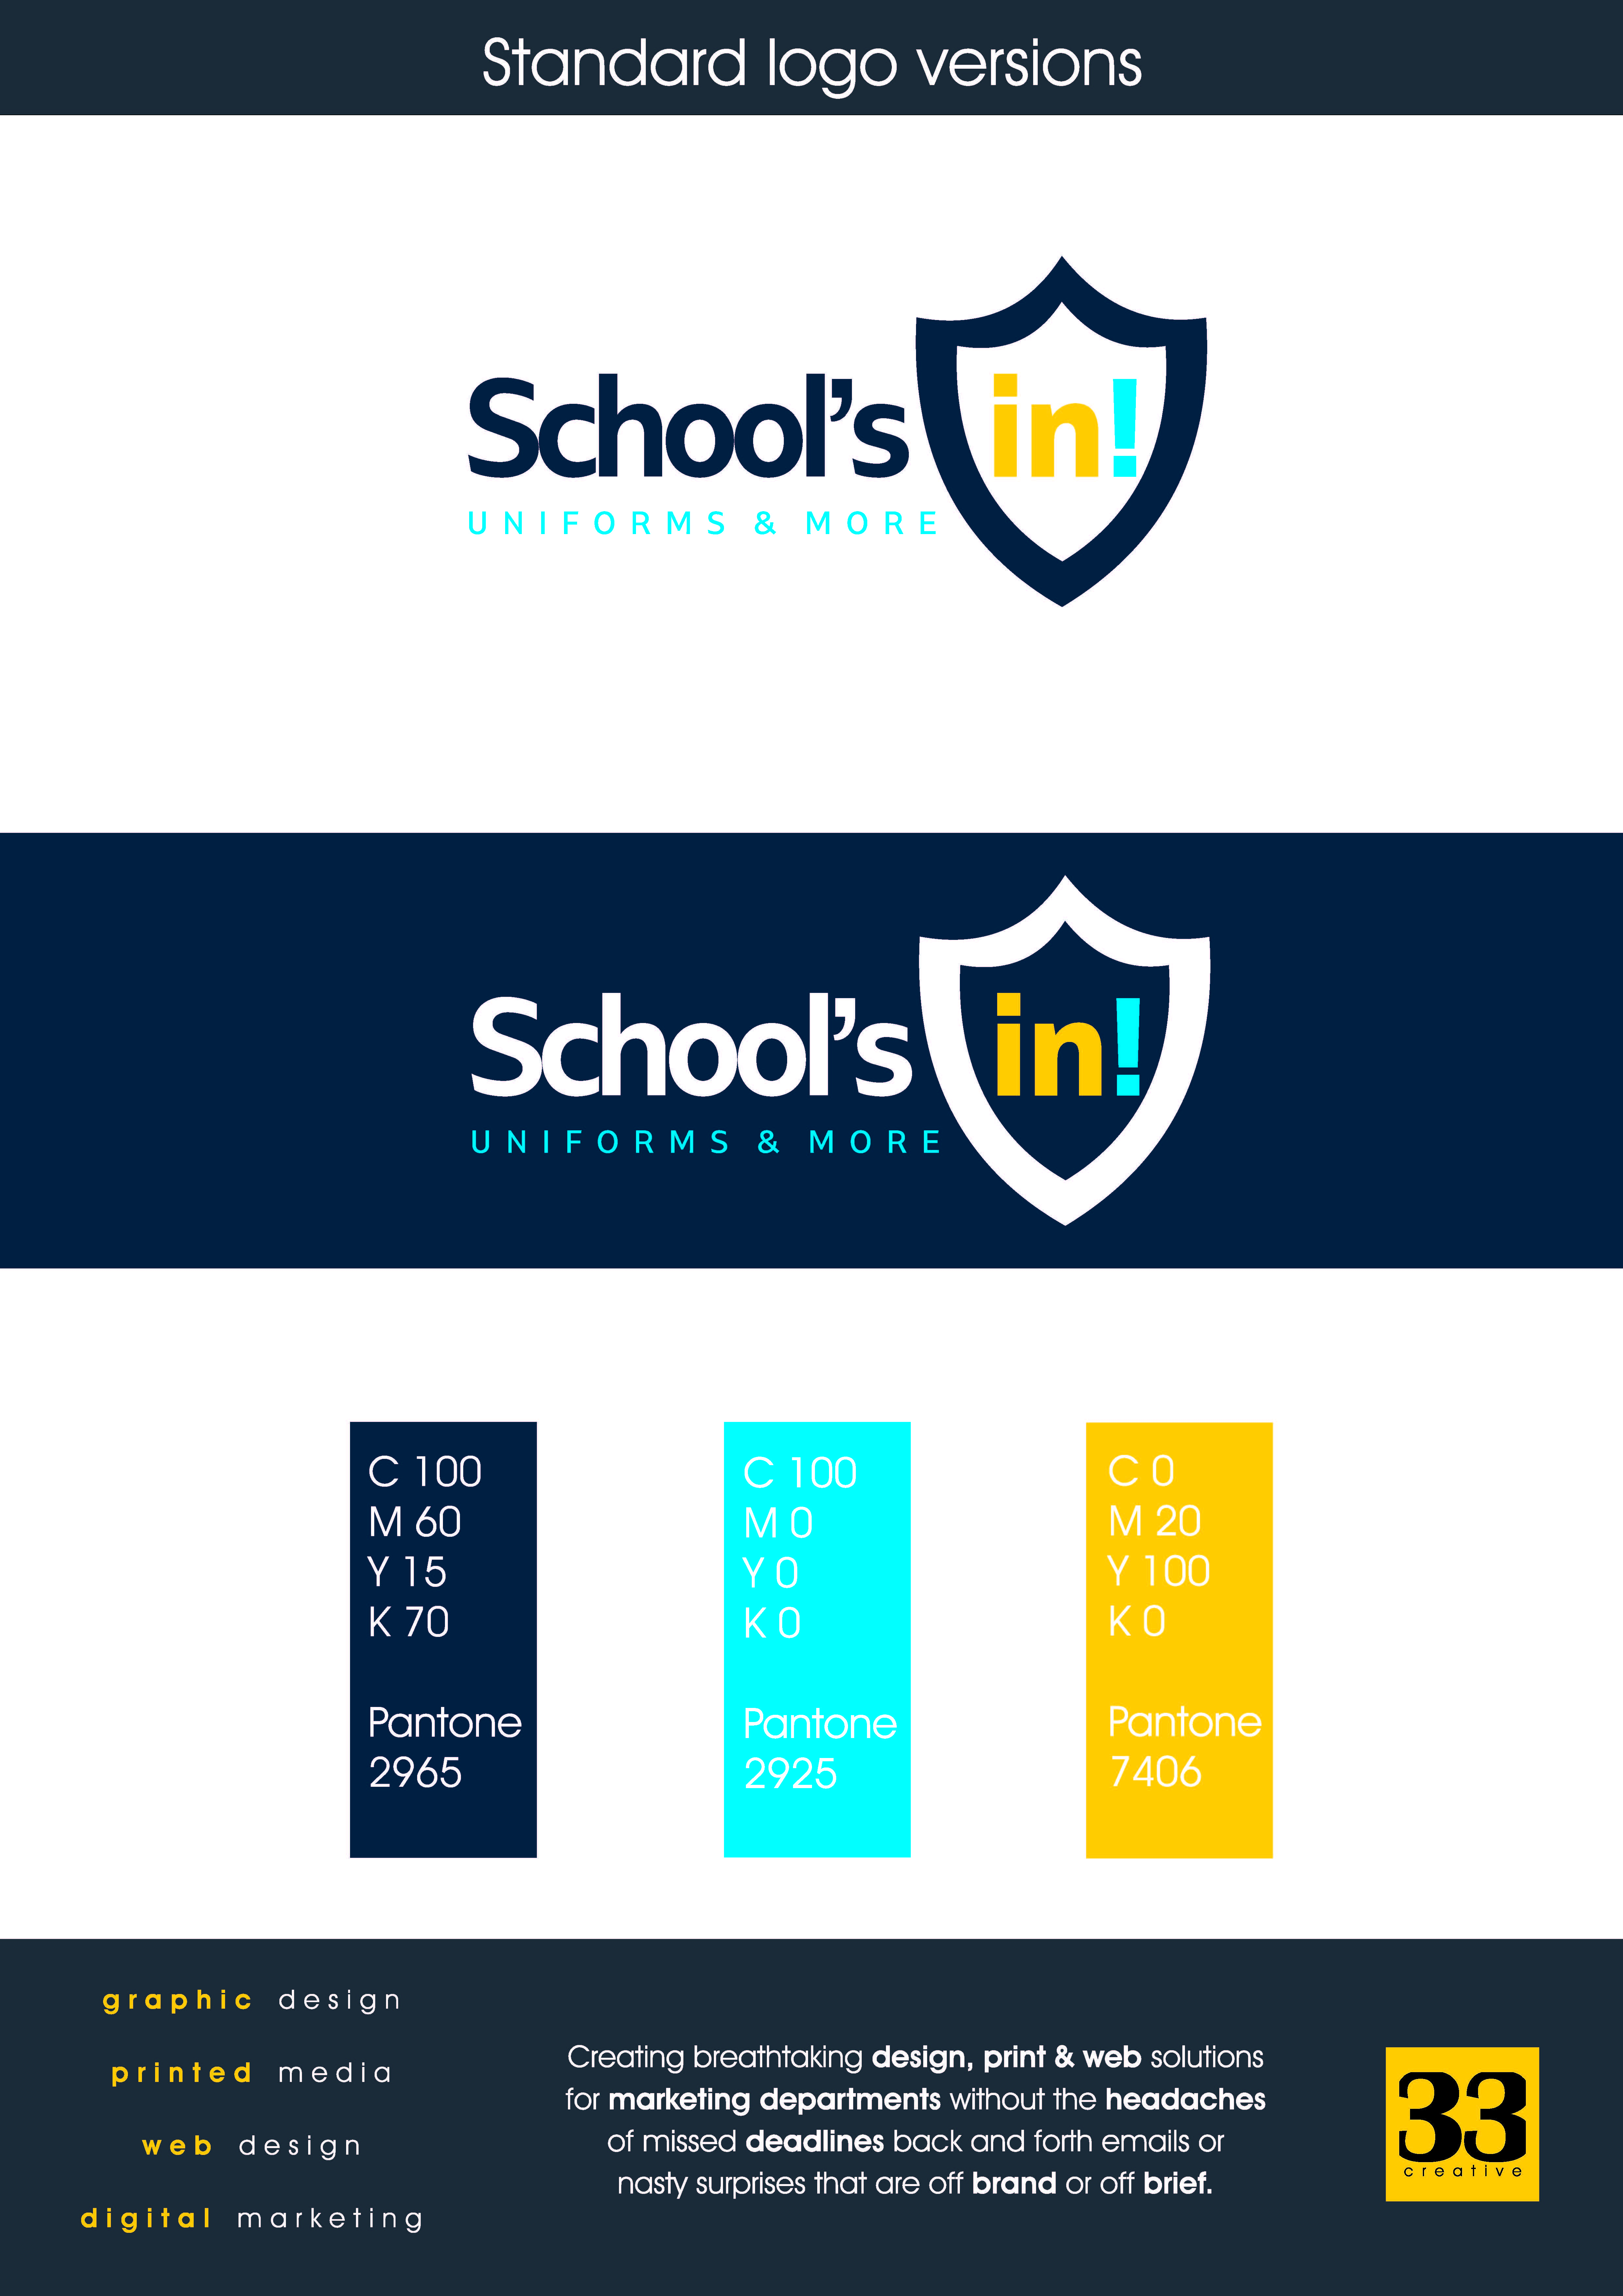 Schools  In logo guide_Page_2